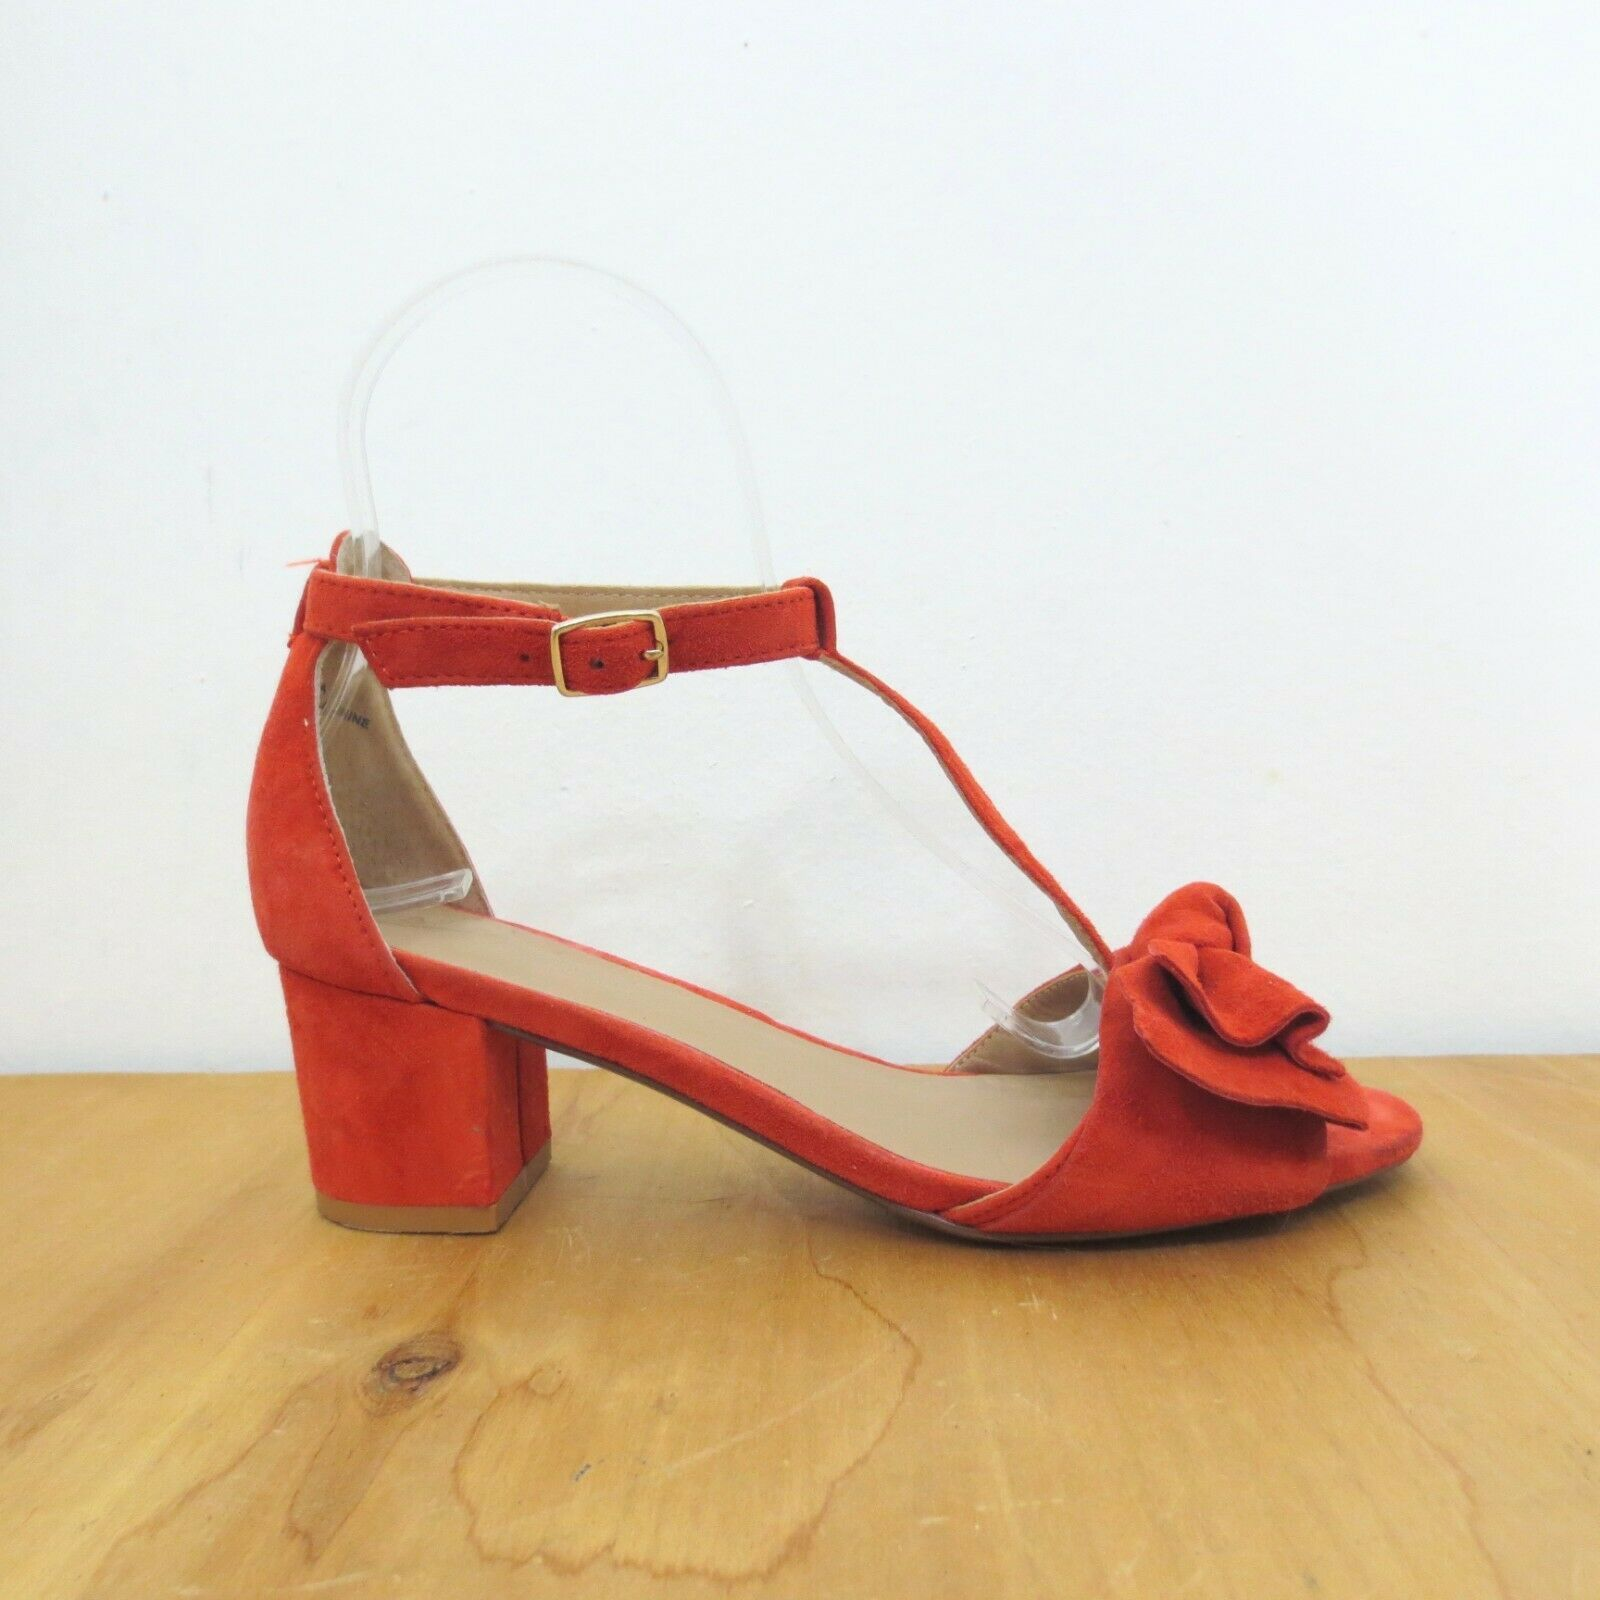 6.5 - Anthropologie Red Suede T Strap Bow Ankle Strap Block Heel Sandals 1022PH - $38.00